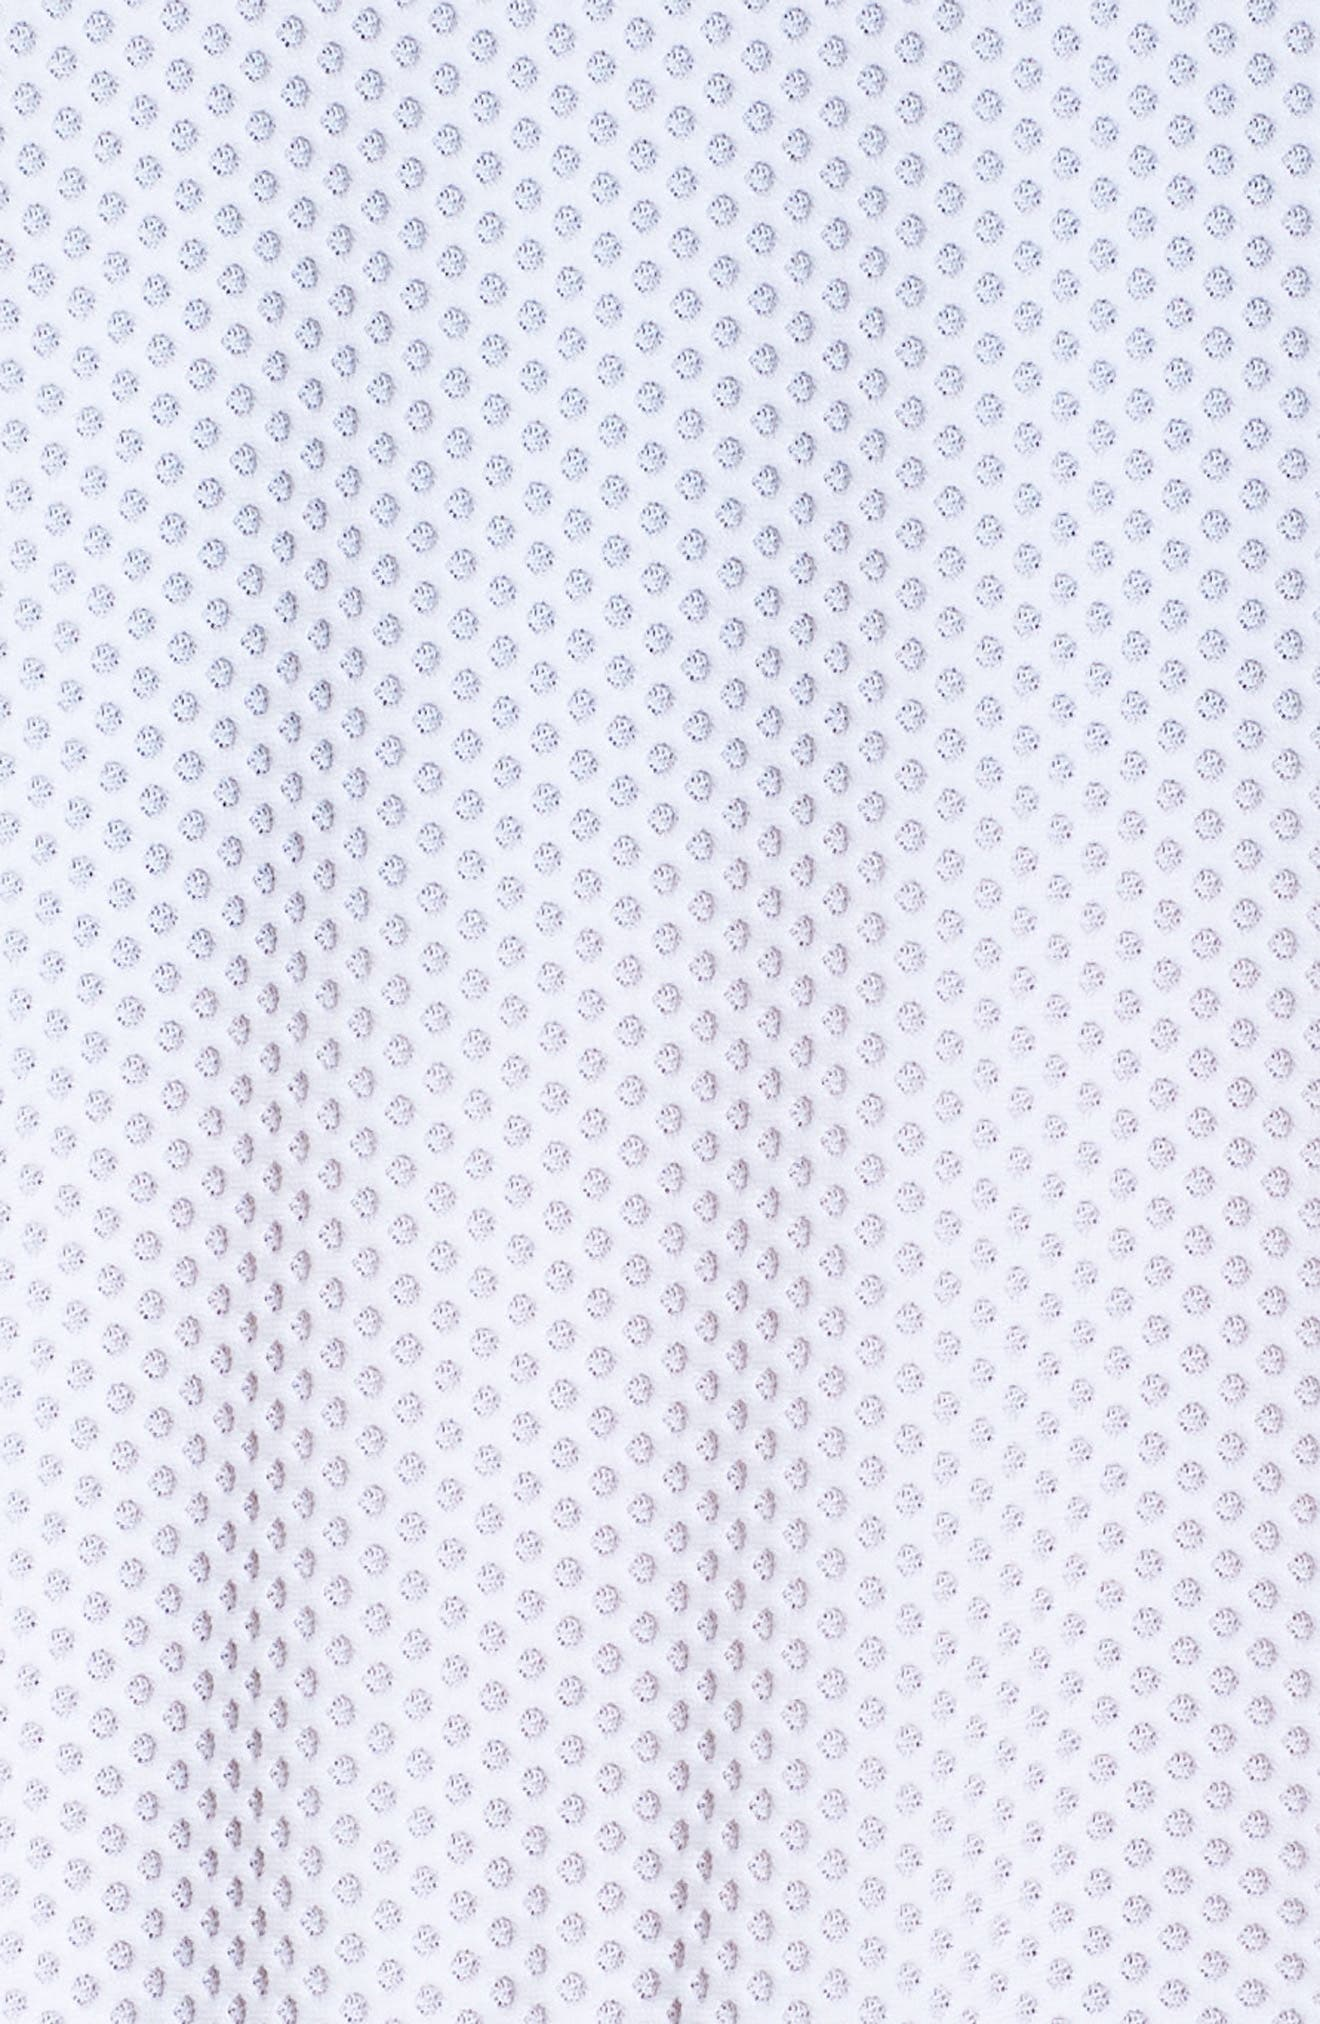 BoomBoom Athletica Bubble Mesh Hoodie,                             Alternate thumbnail 6, color,                             White